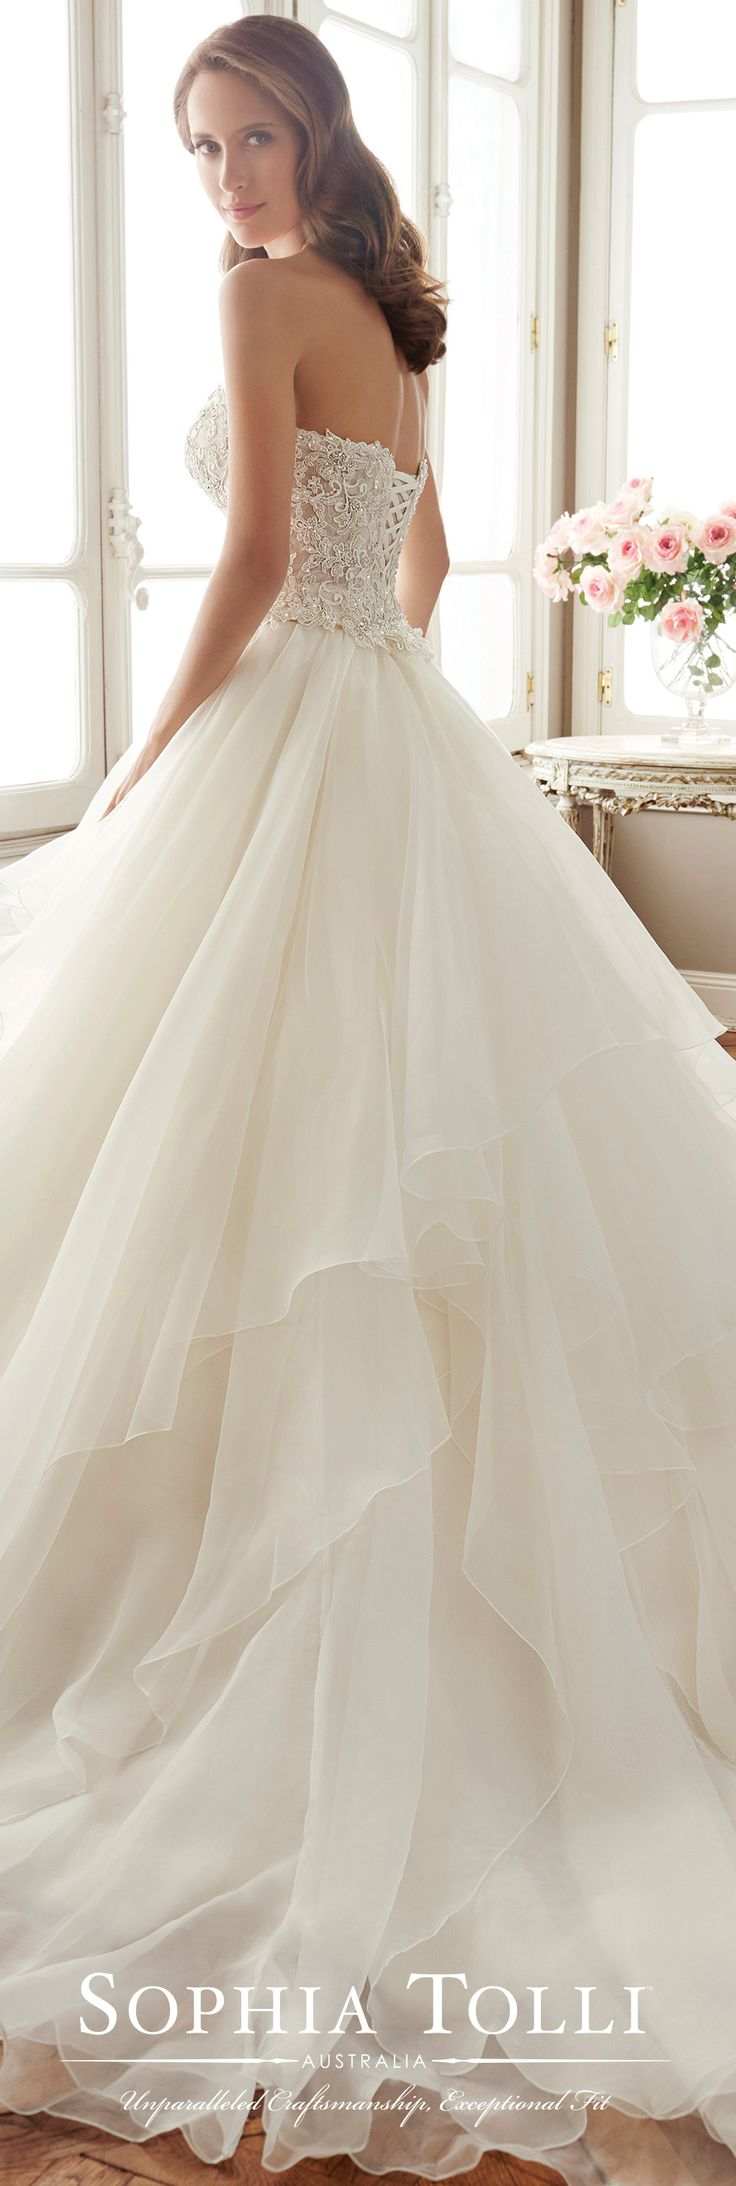 Modern no back wedding dresses ideas princess wedding for No back wedding dress